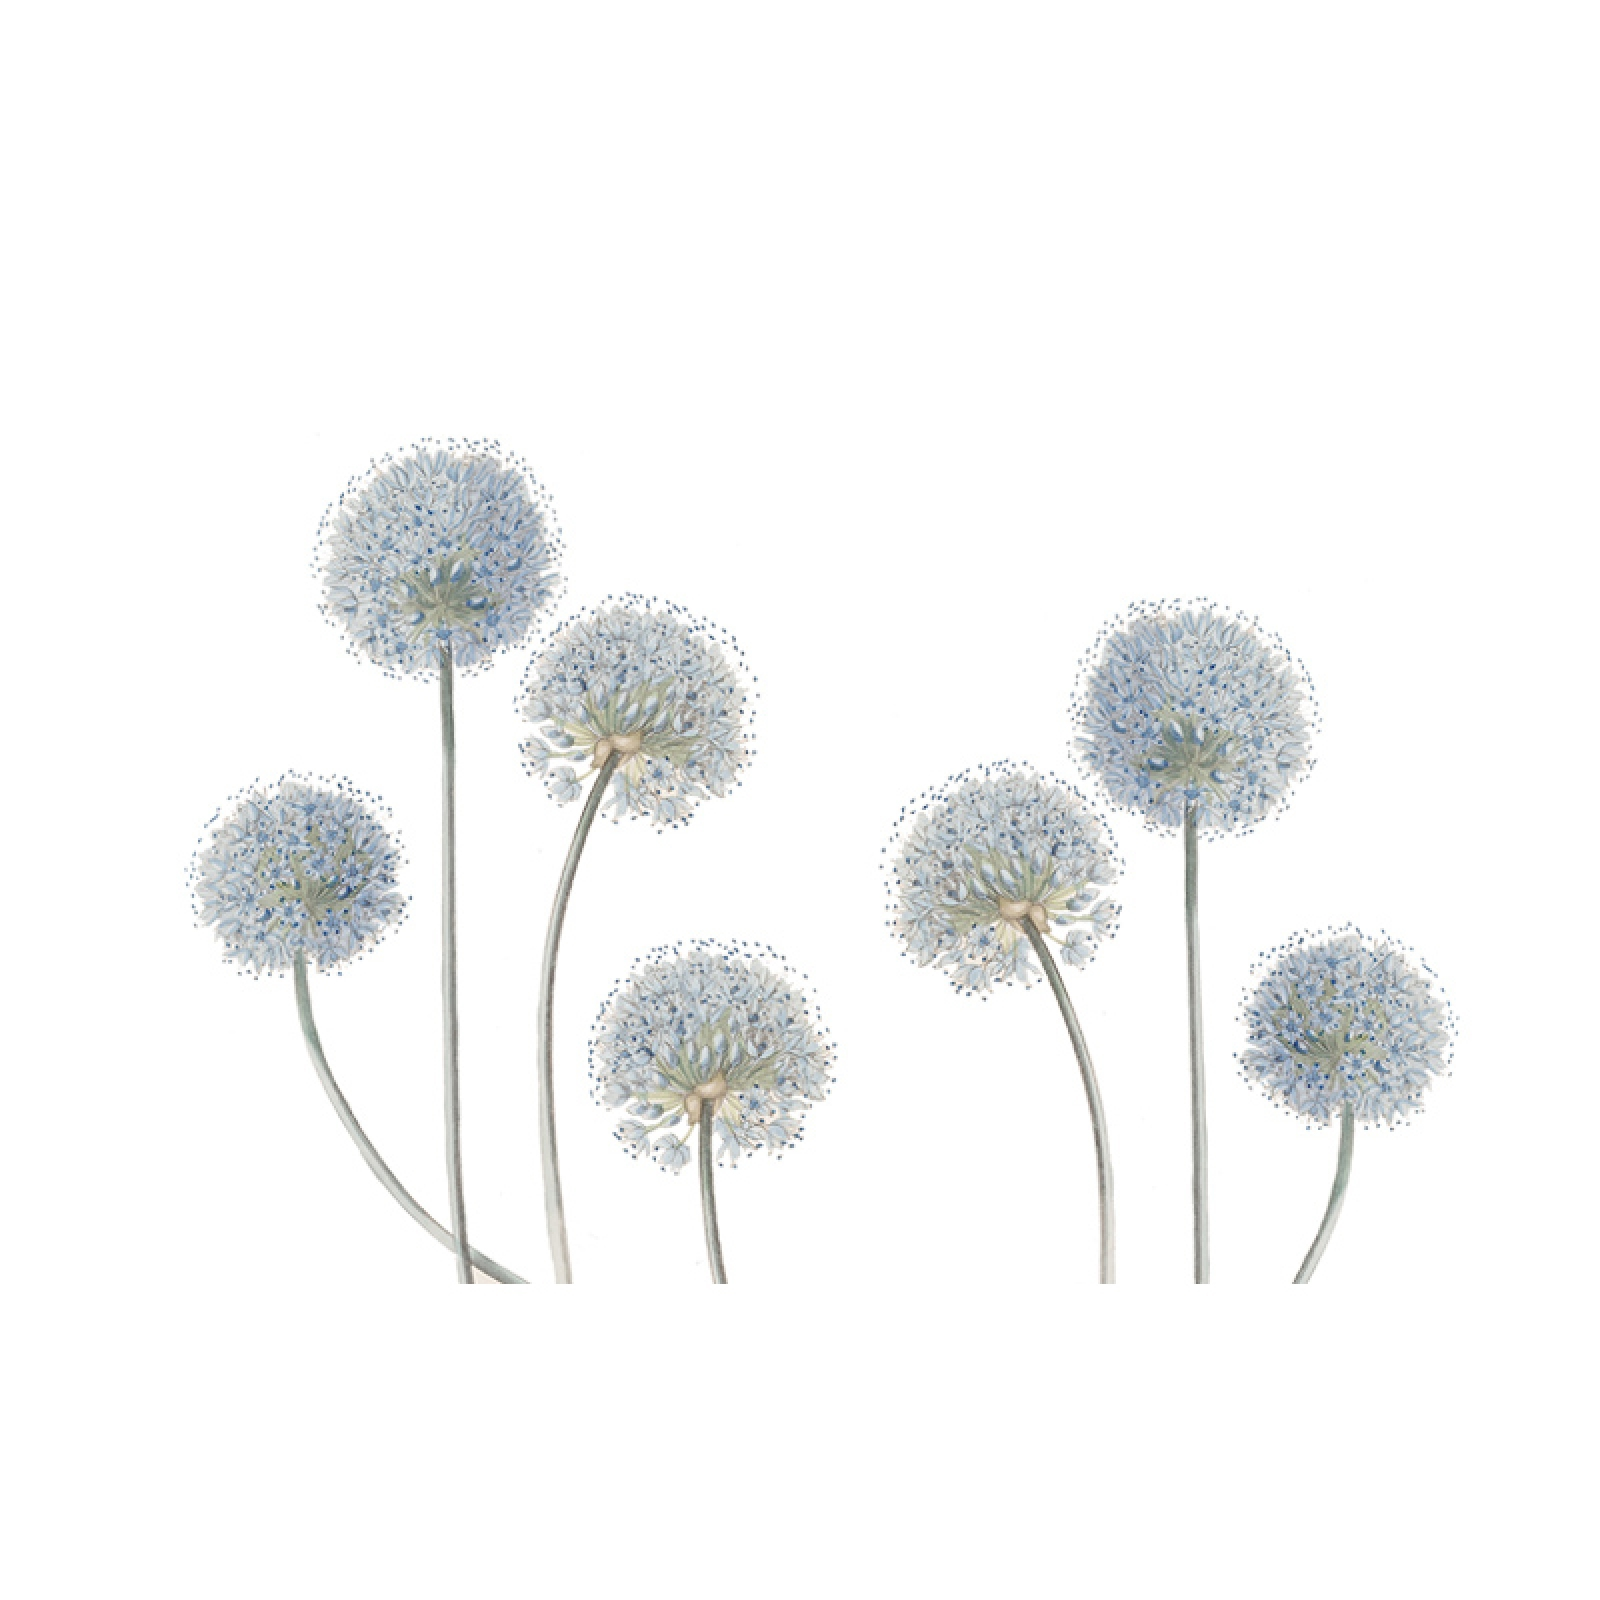 Pvc Self Adhesive Dandelion Wall Stickers For Living Room